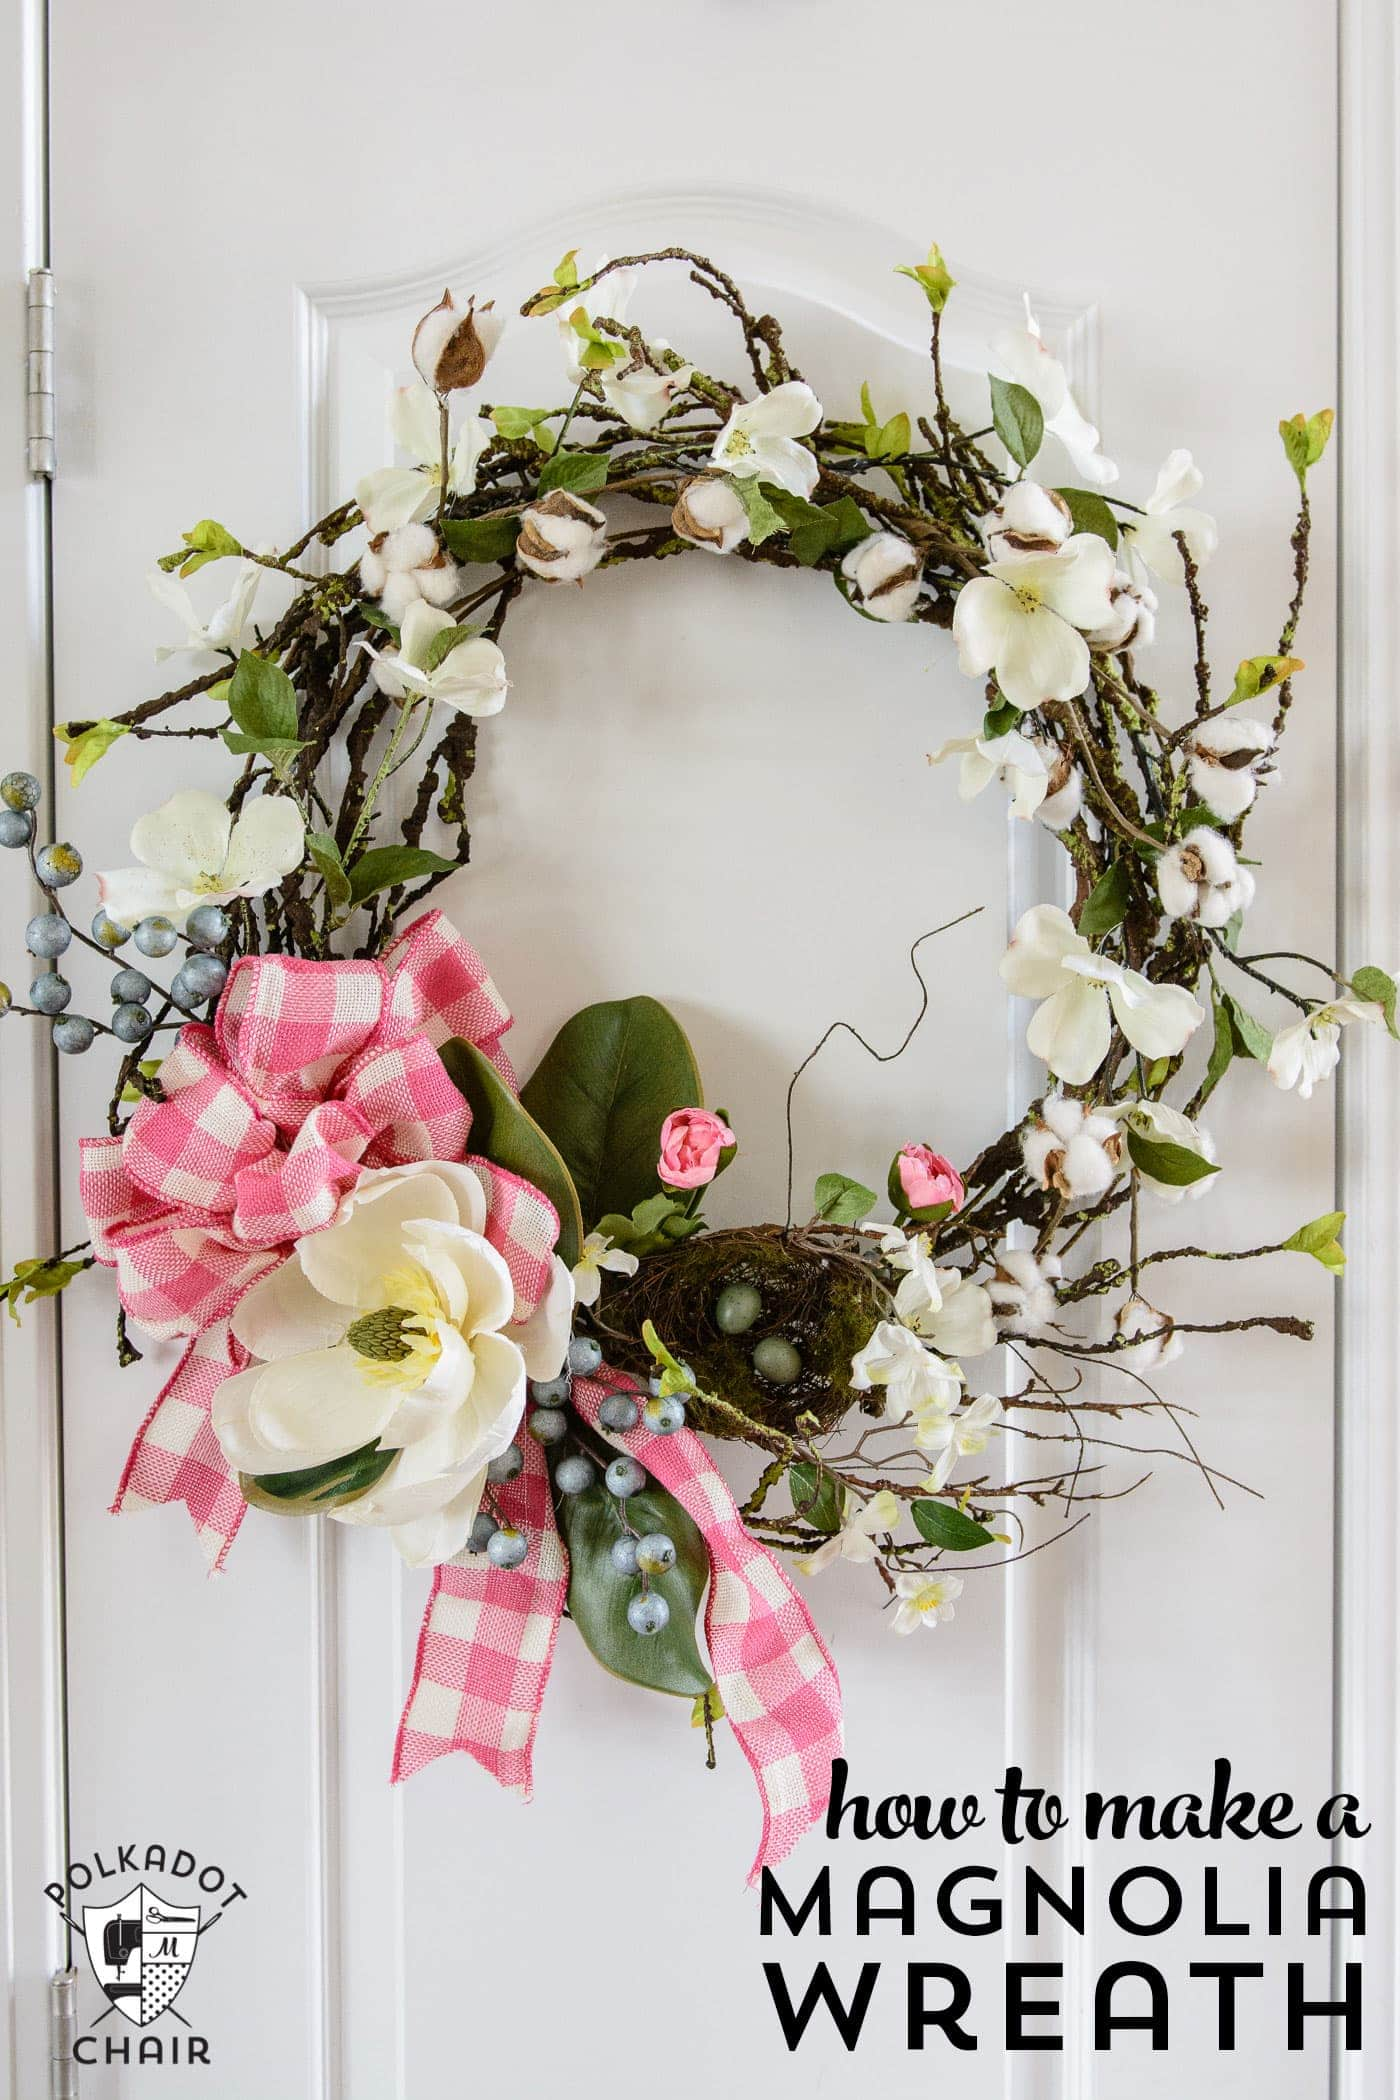 high chair on upholstered office chairs diy magnolia spring wreath ideas